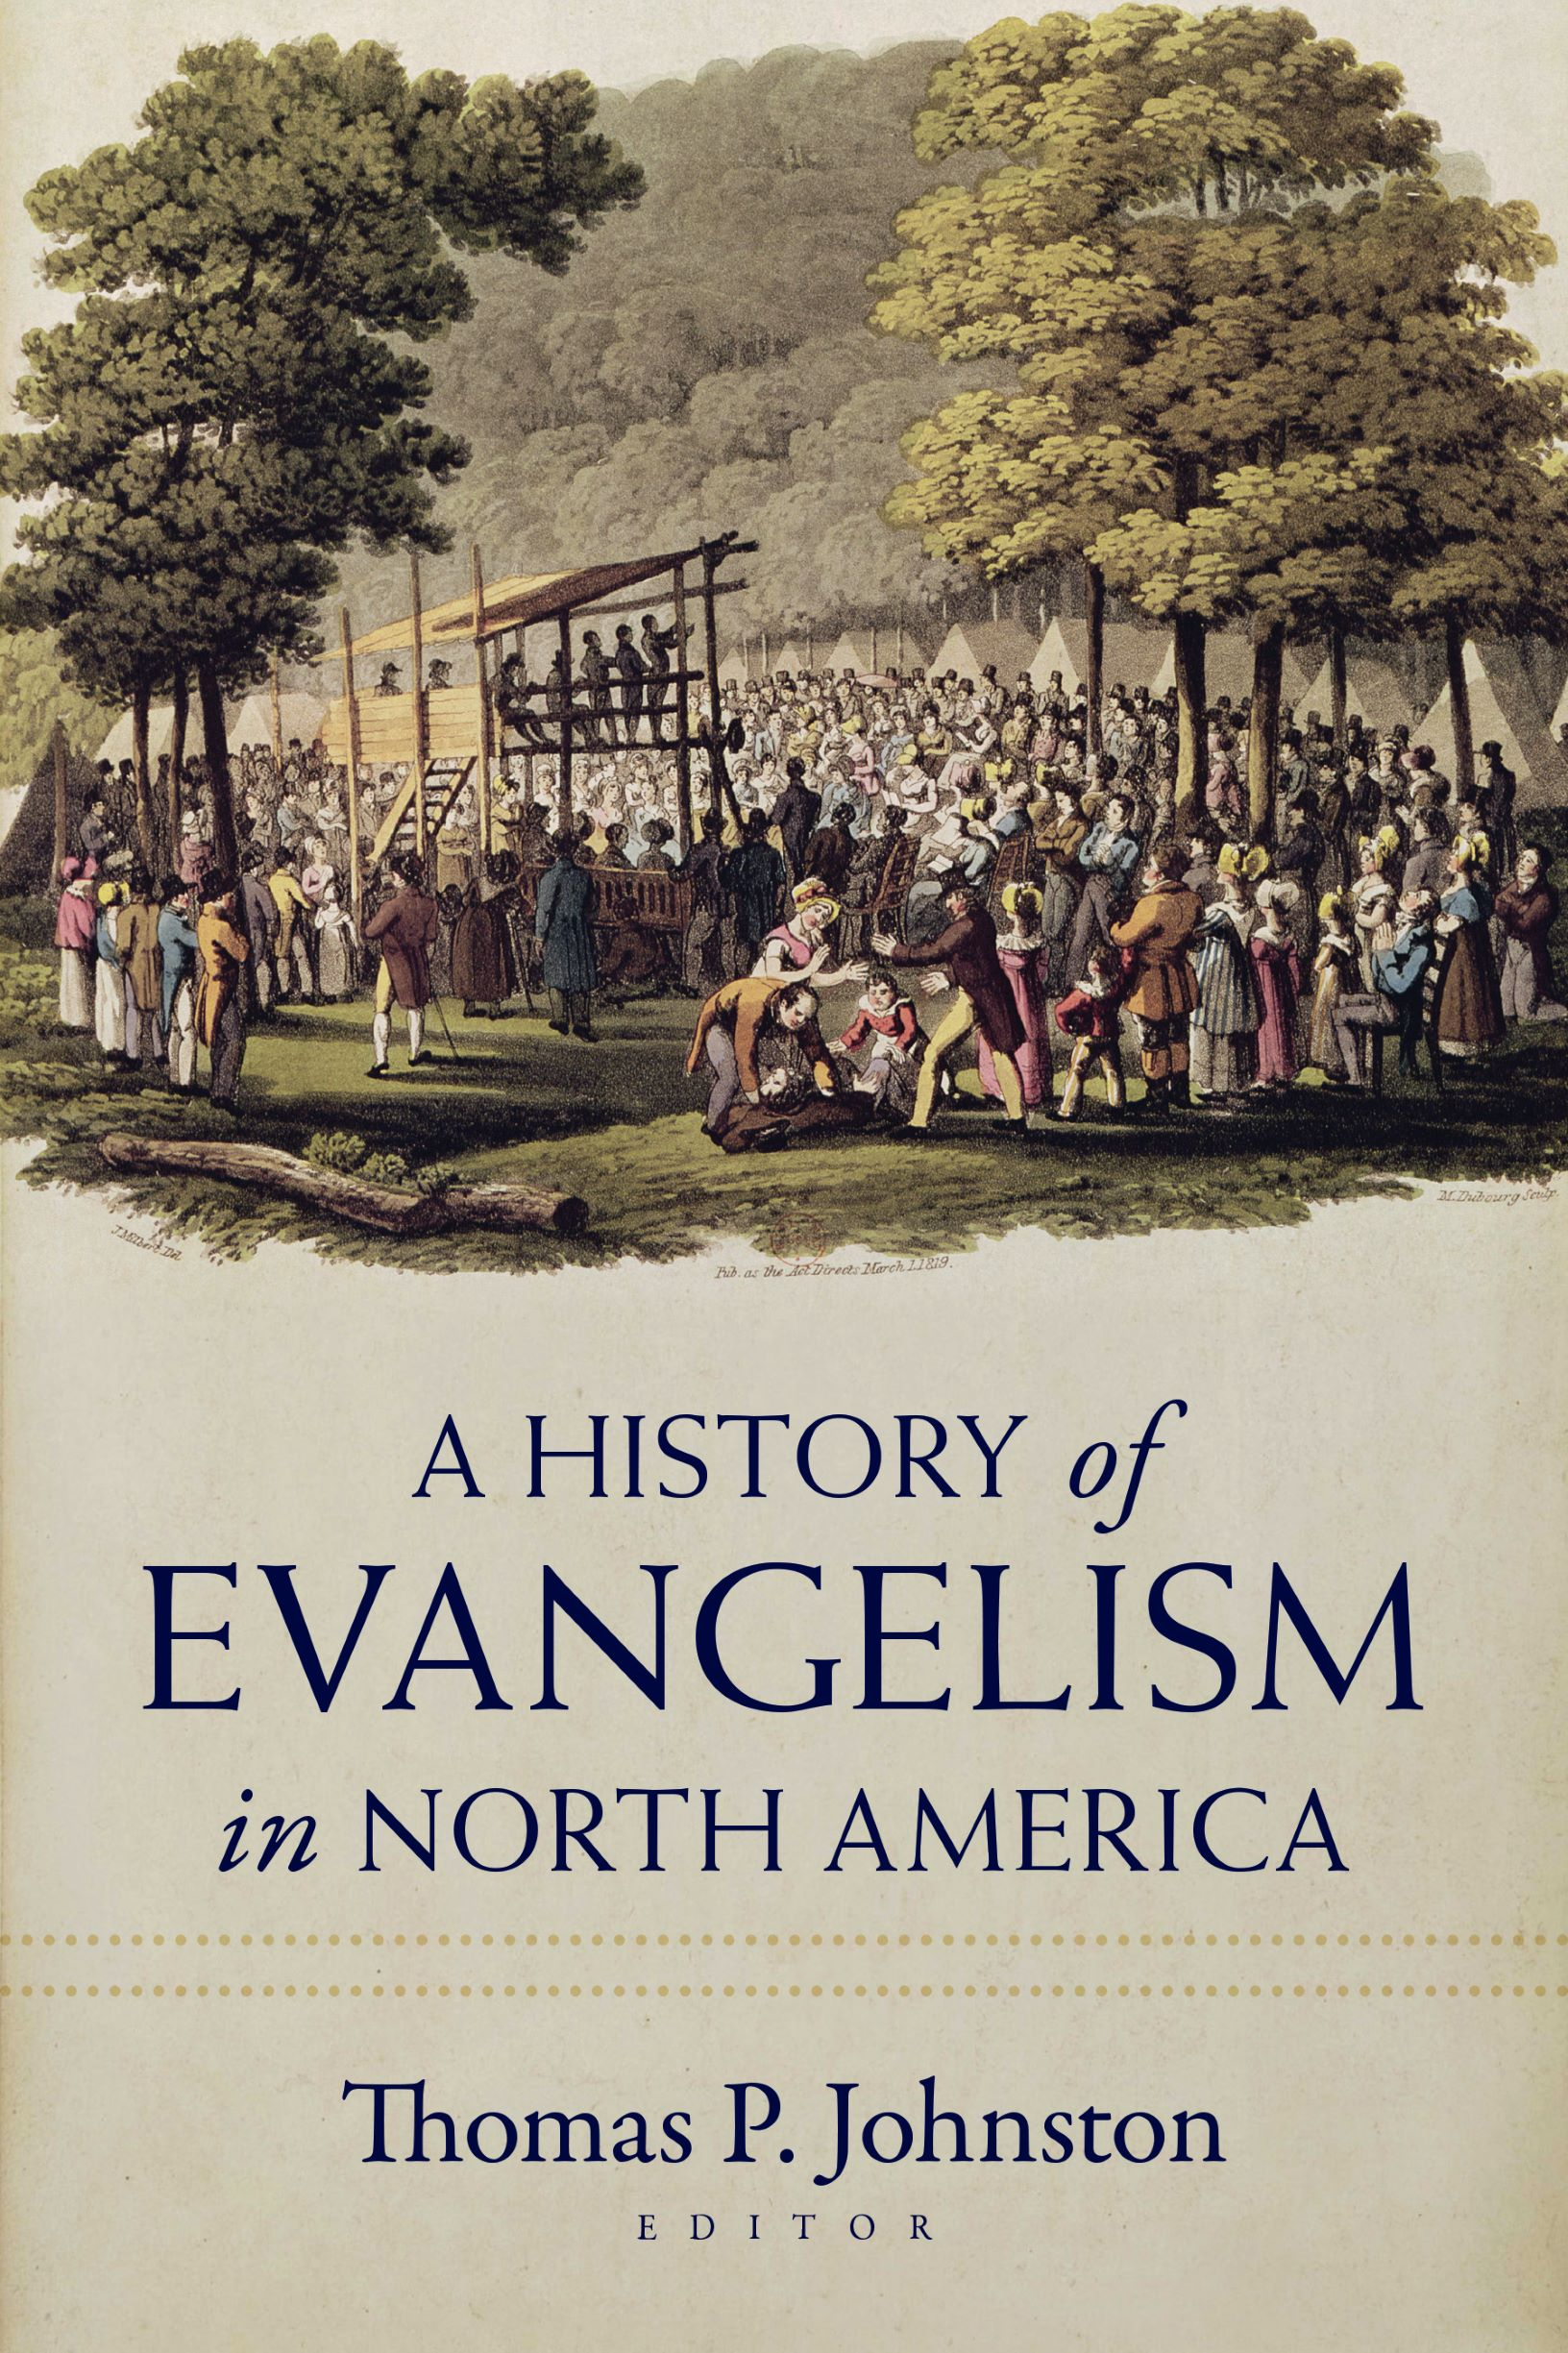 A History of Evangelism in North America